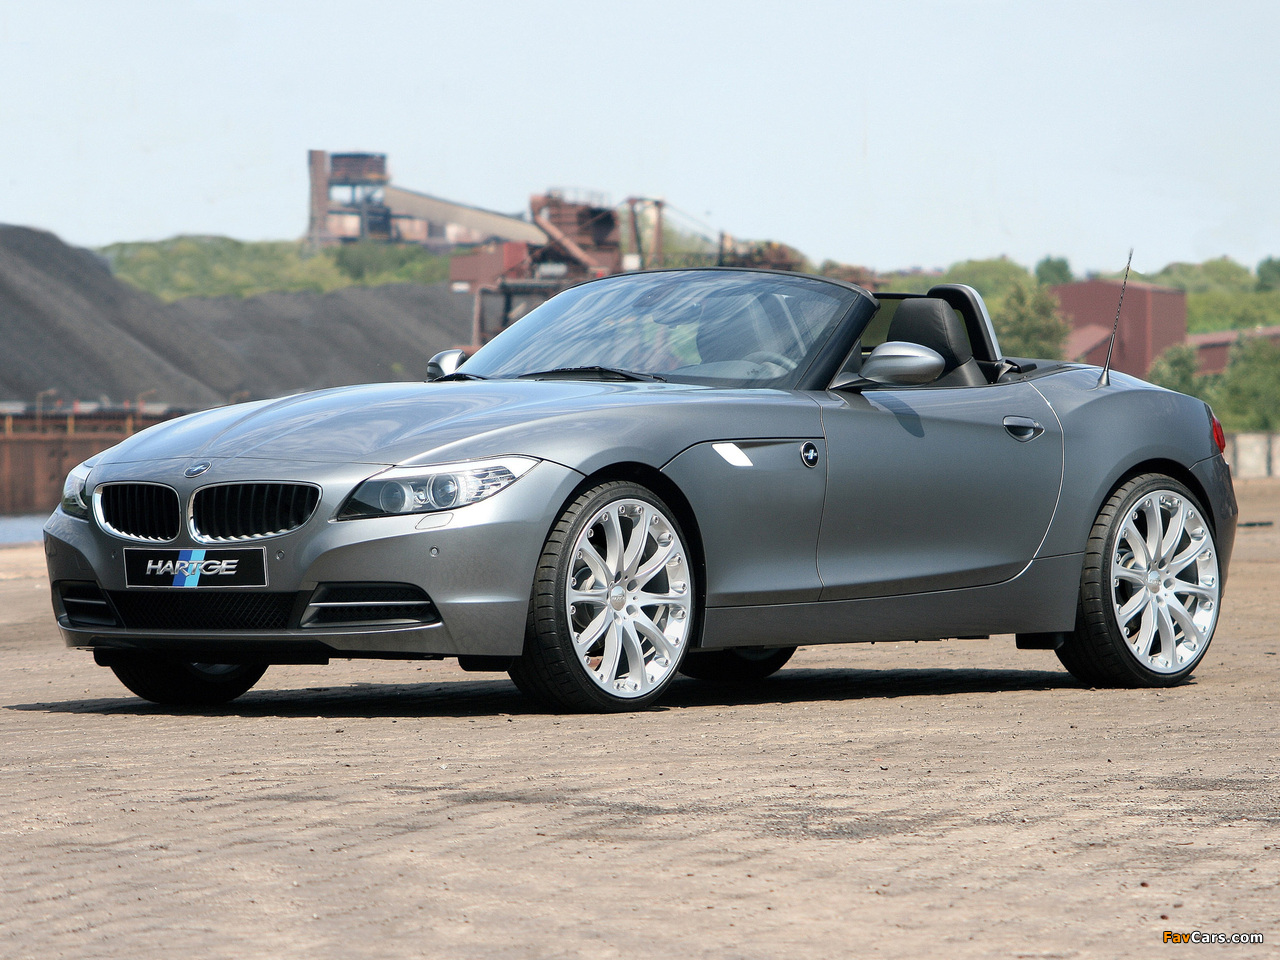 Pictures Of Hartge Bmw Z4 Roadster E89 2009 10 1280x960